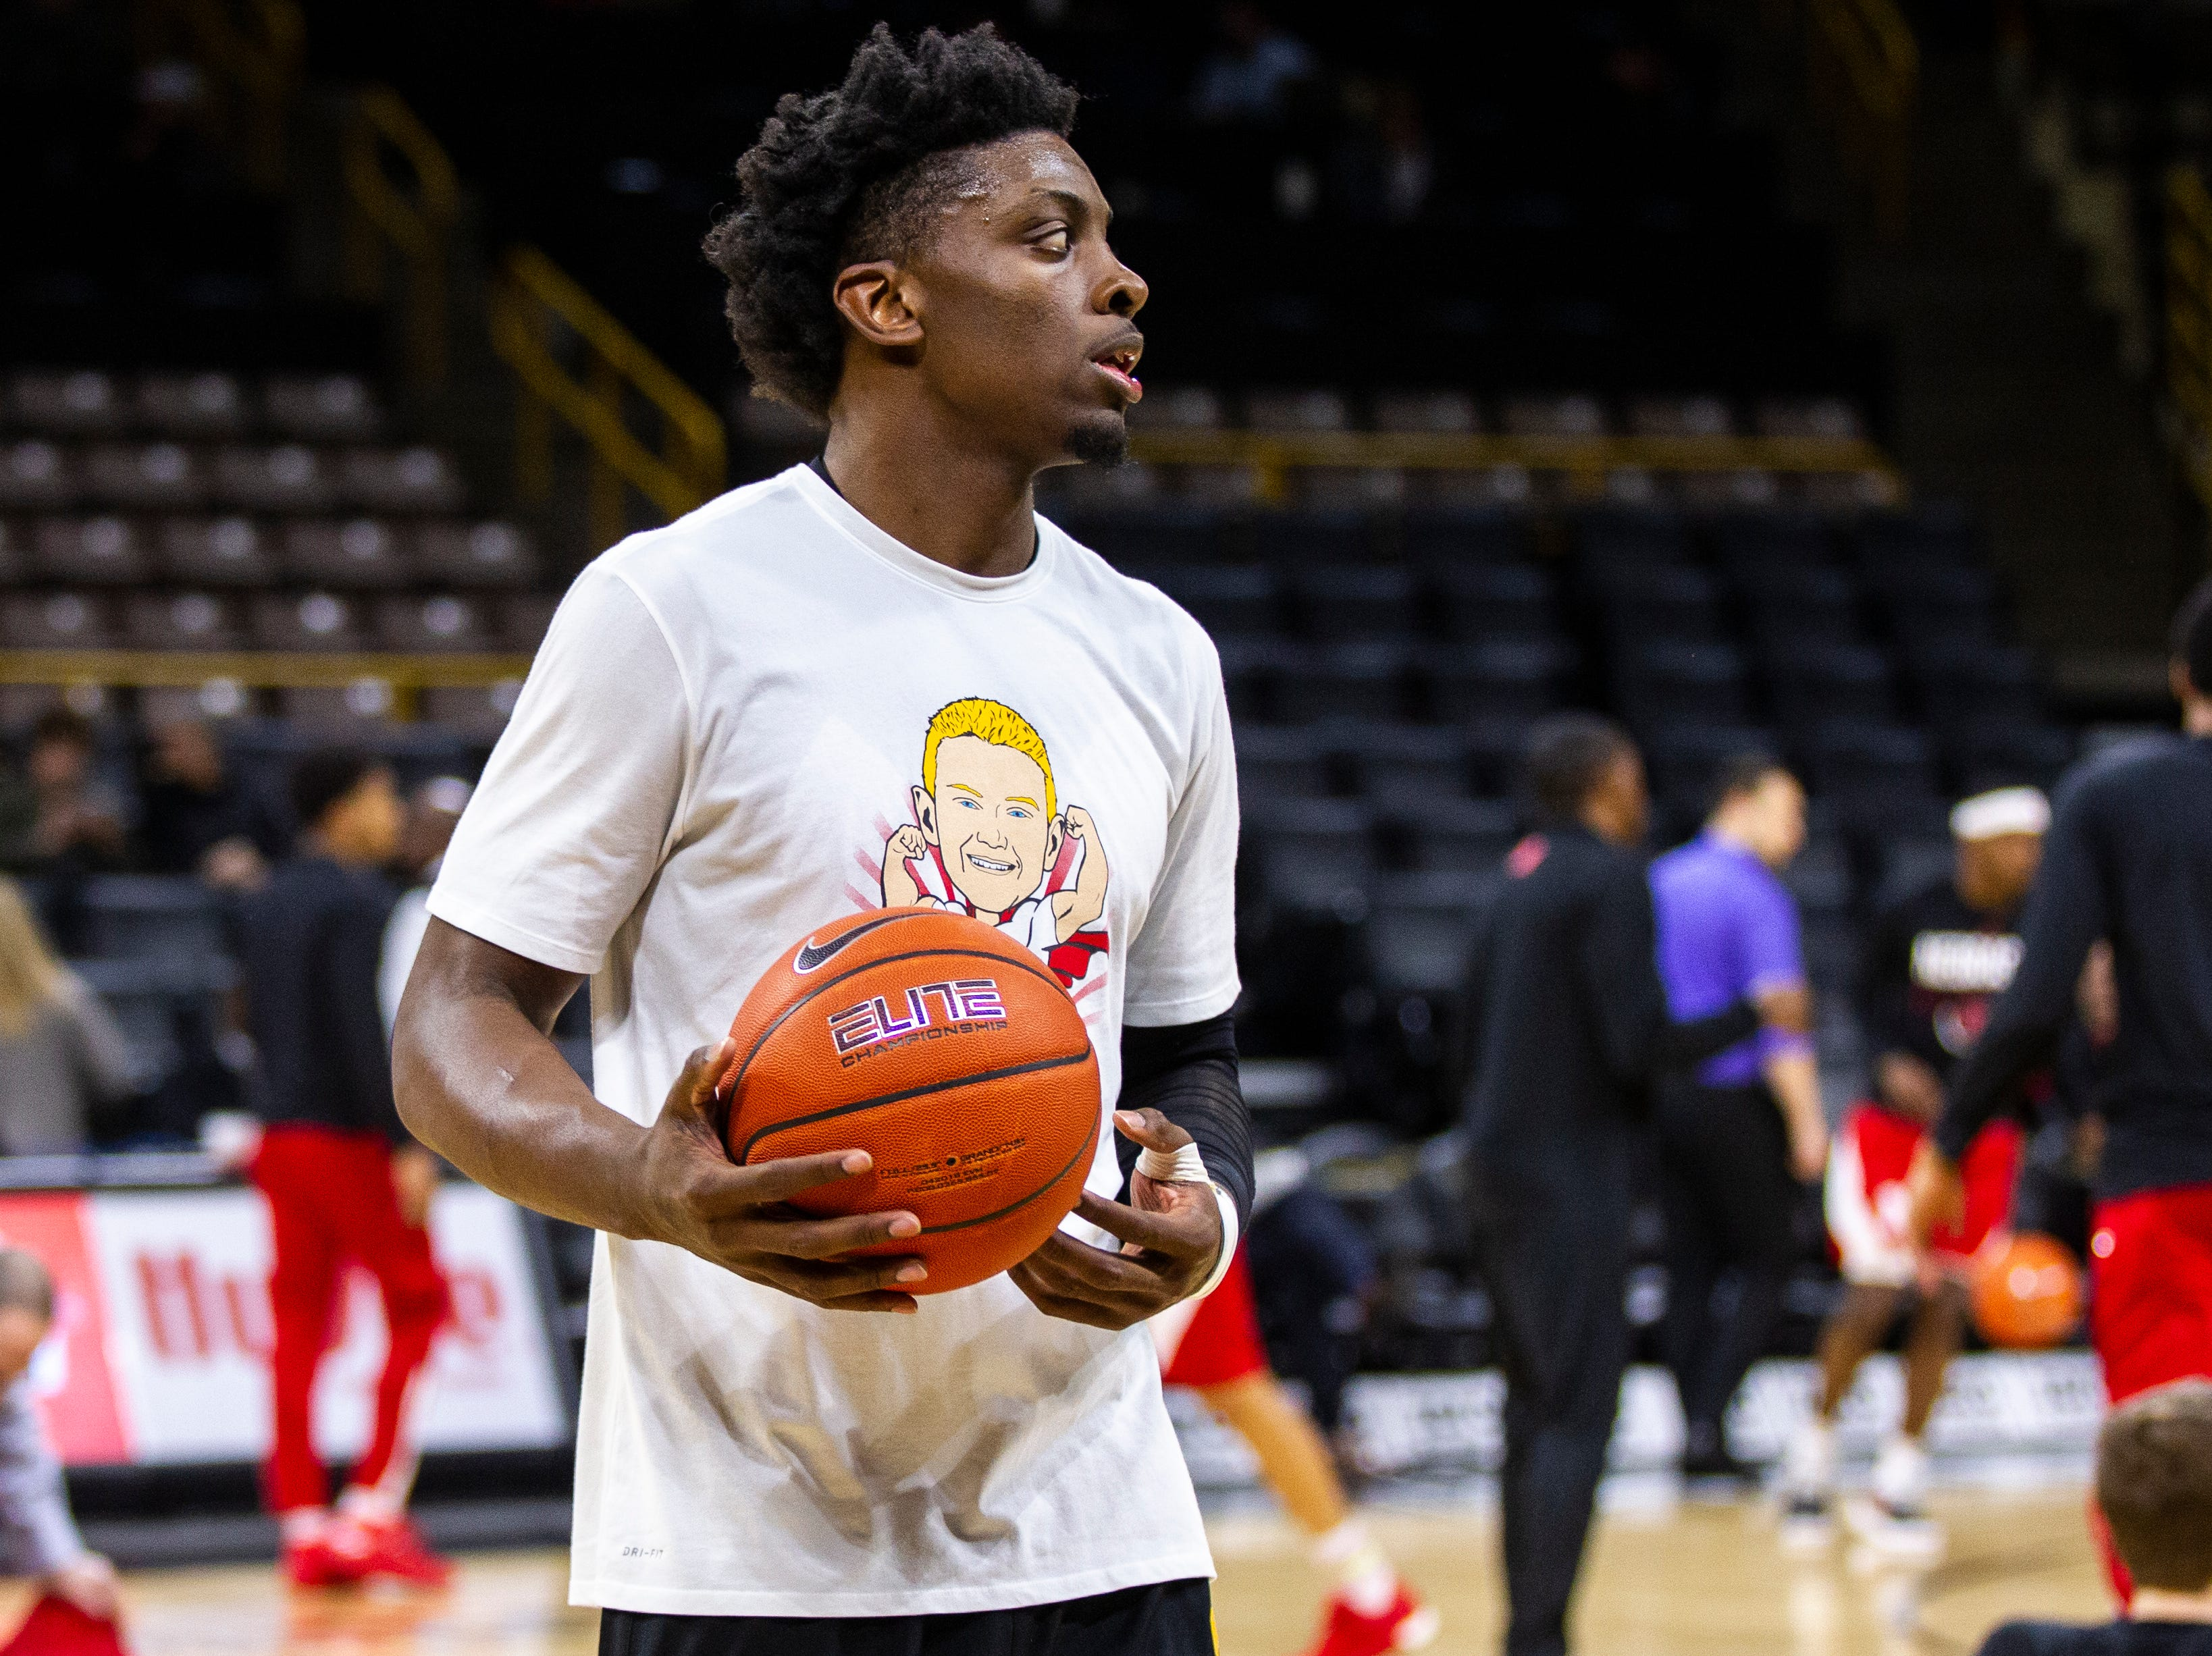 Iowa forward Tyler Cook warms up while wearing a shirt featuring a logo for Tate Schaefer, an 11-year-old from Williamsburg who has a tumor in his brain before a NCAA Big Ten Conference men's basketball game on Sunday, Jan. 6, 2019, at the Carver-Hawkeye Arena in Iowa City, Iowa.